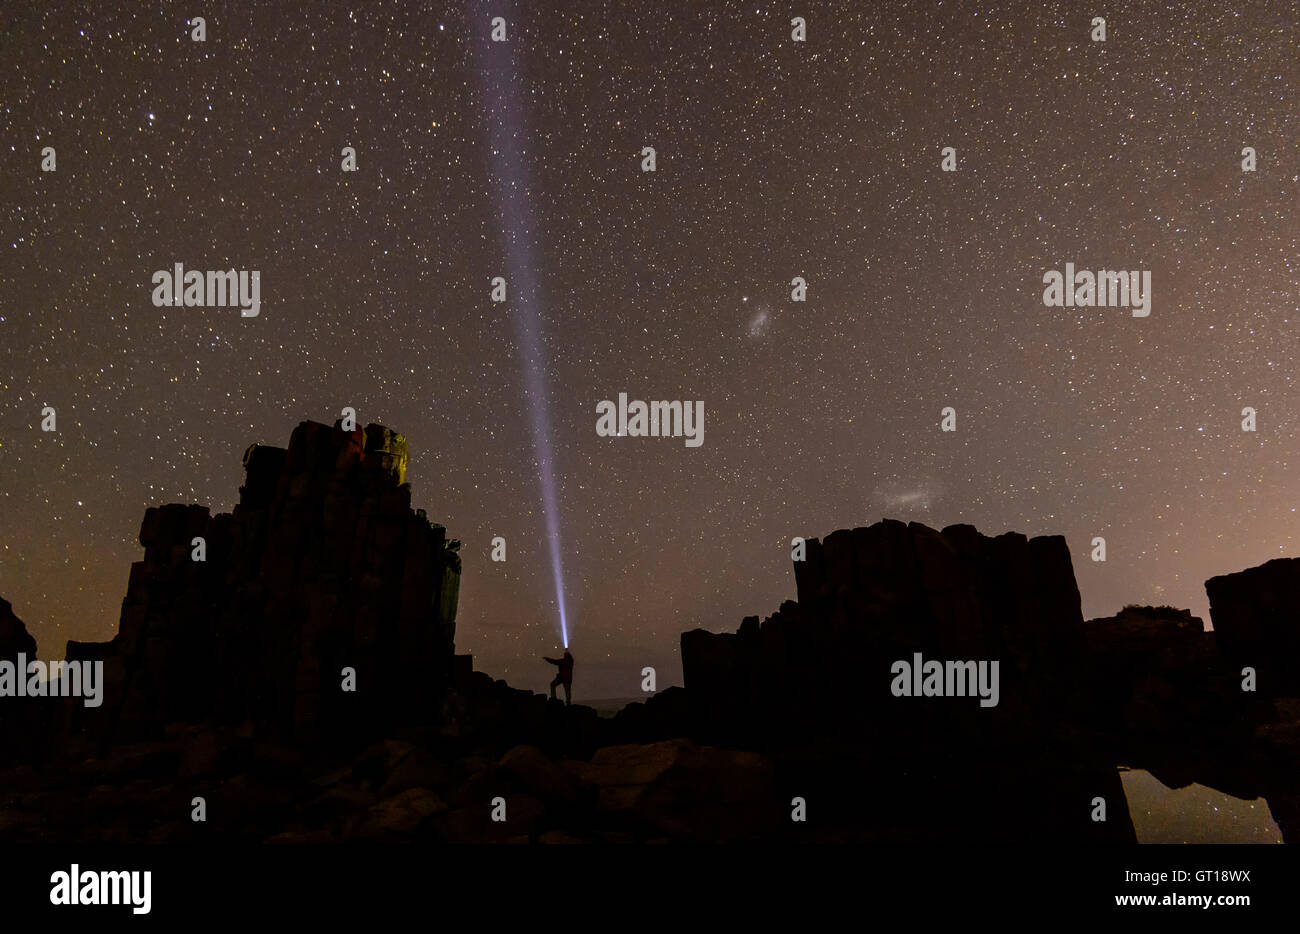 Person beaming to the stars, Bombo Headland Quarry,New South Wales, NSW, Australia - Stock Image